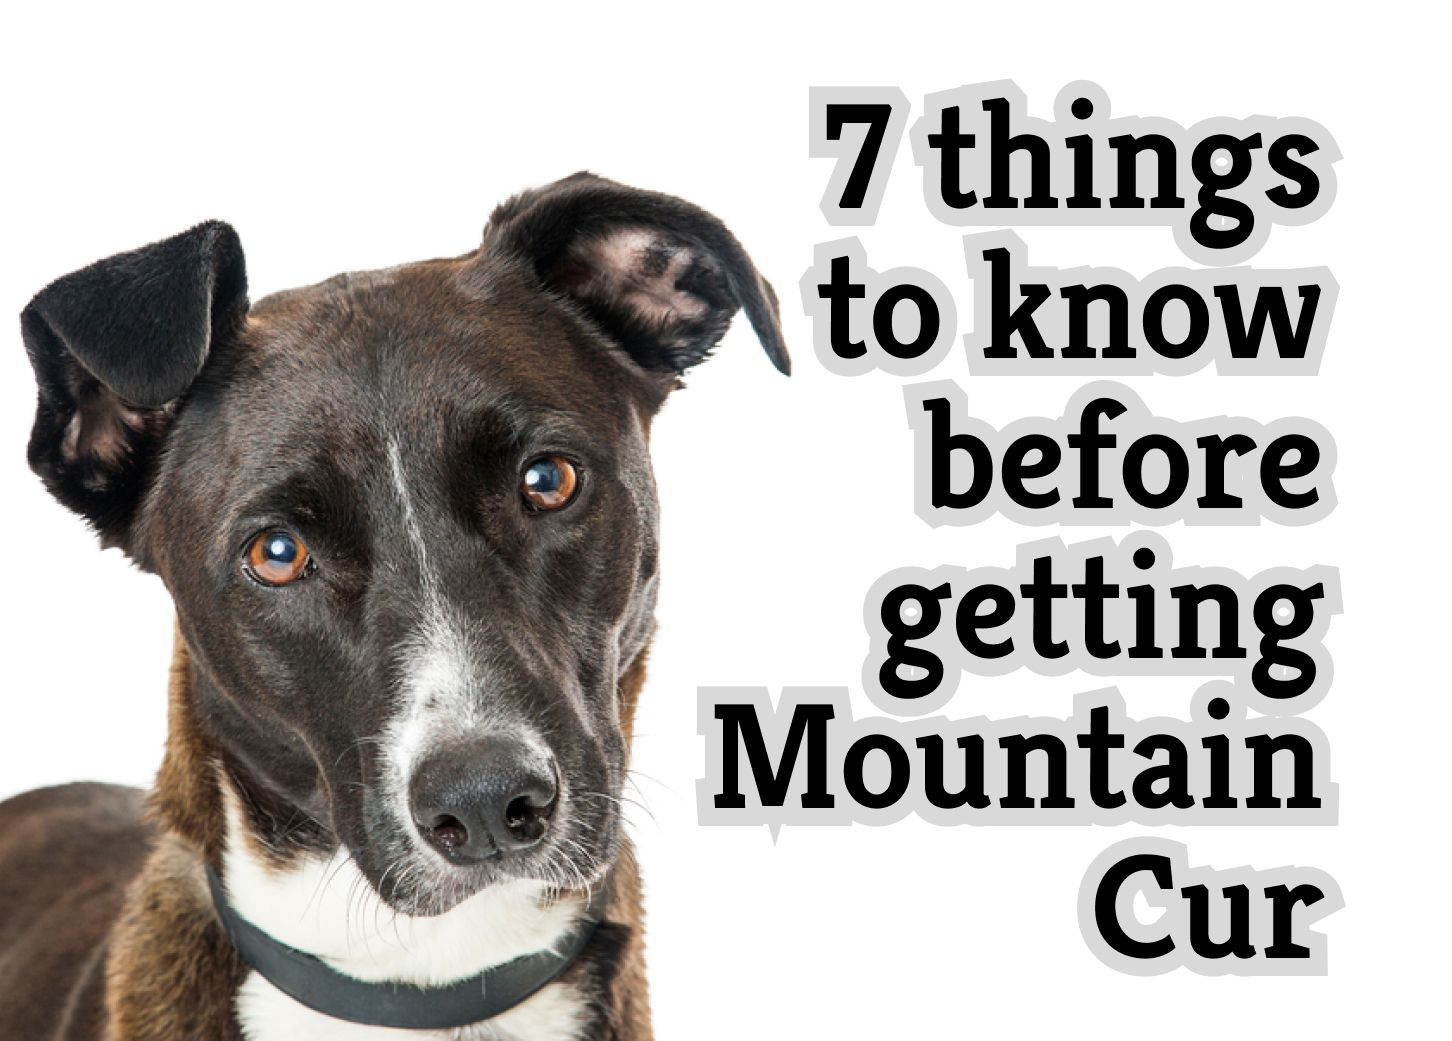 7 Things to Know Before Getting a Mountain Cur